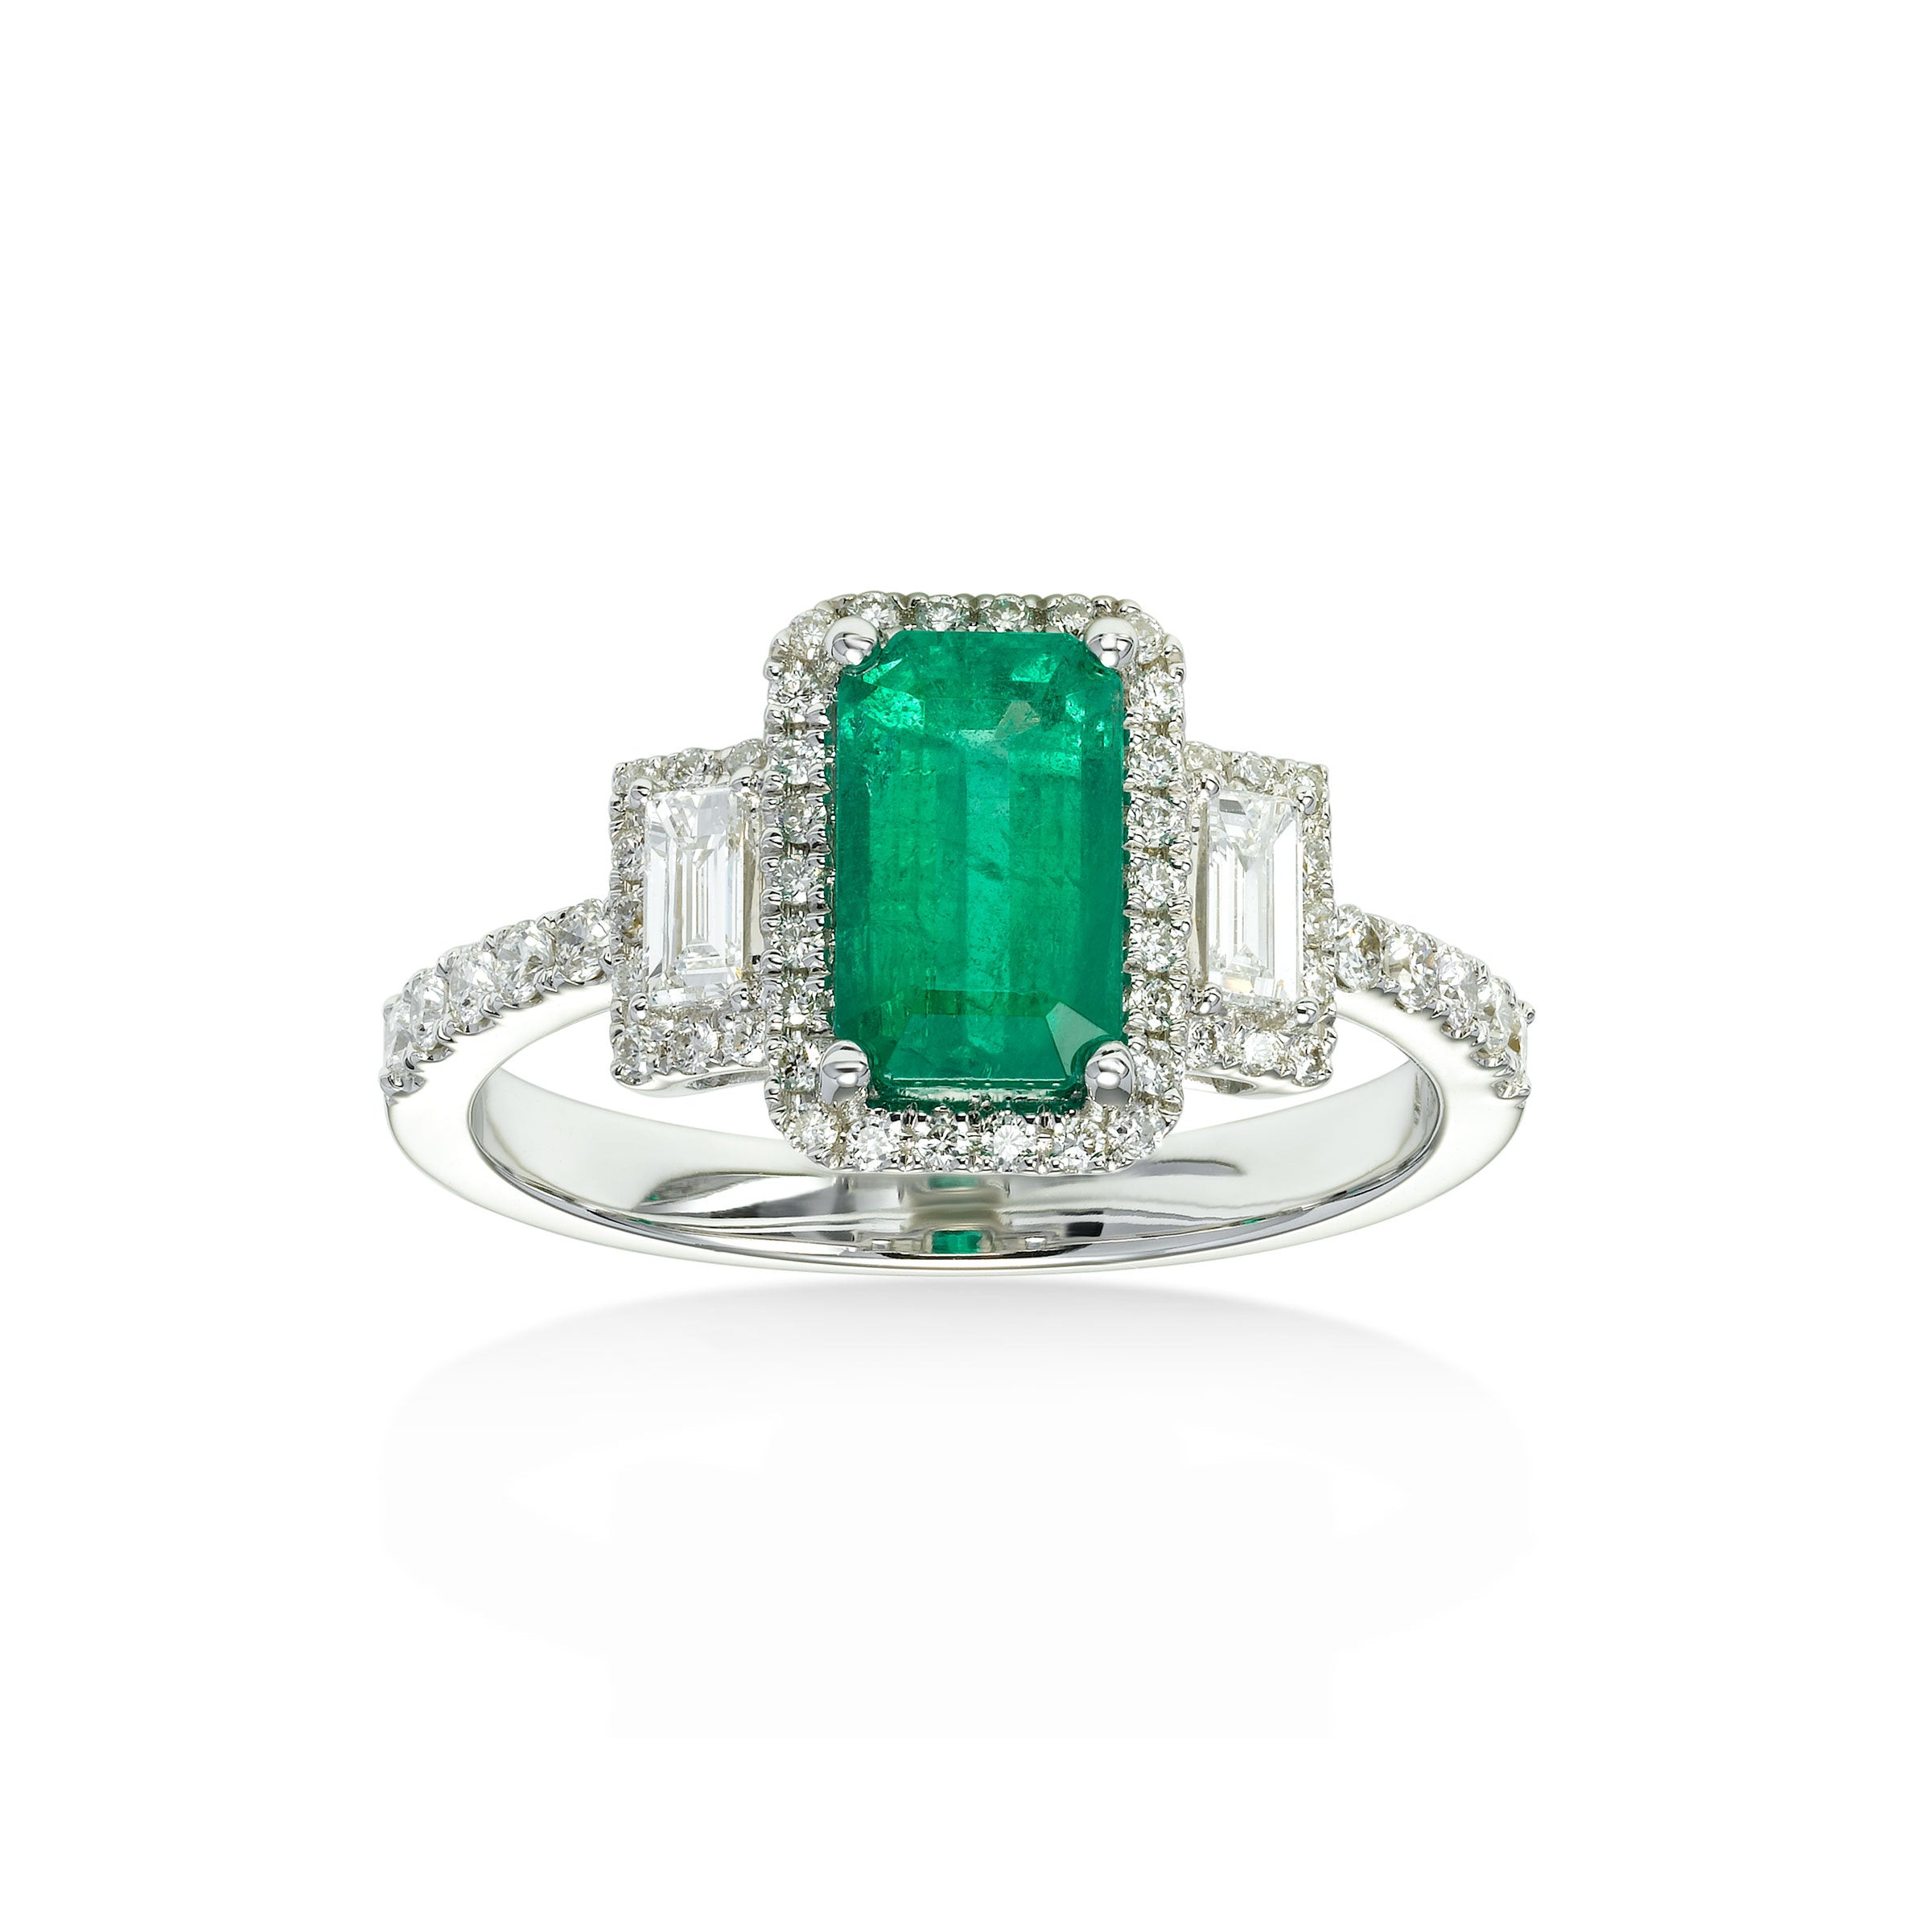 Deco Style Emerald and Diamond Ring, 18K White Gold